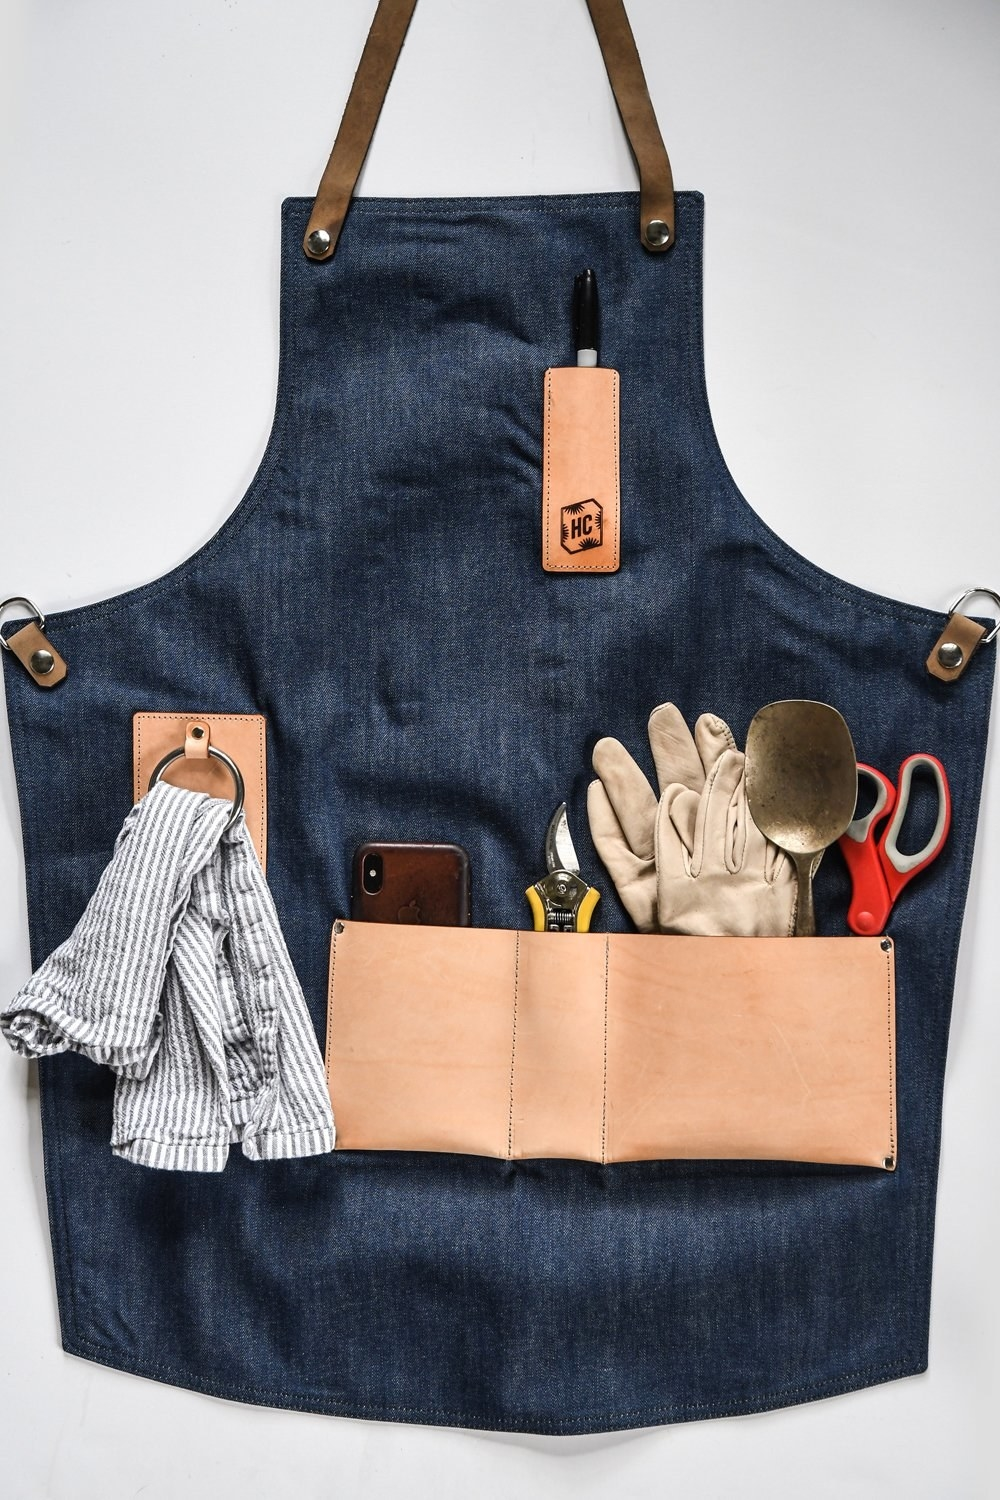 The apron is displayed with all the pockets filled with tools